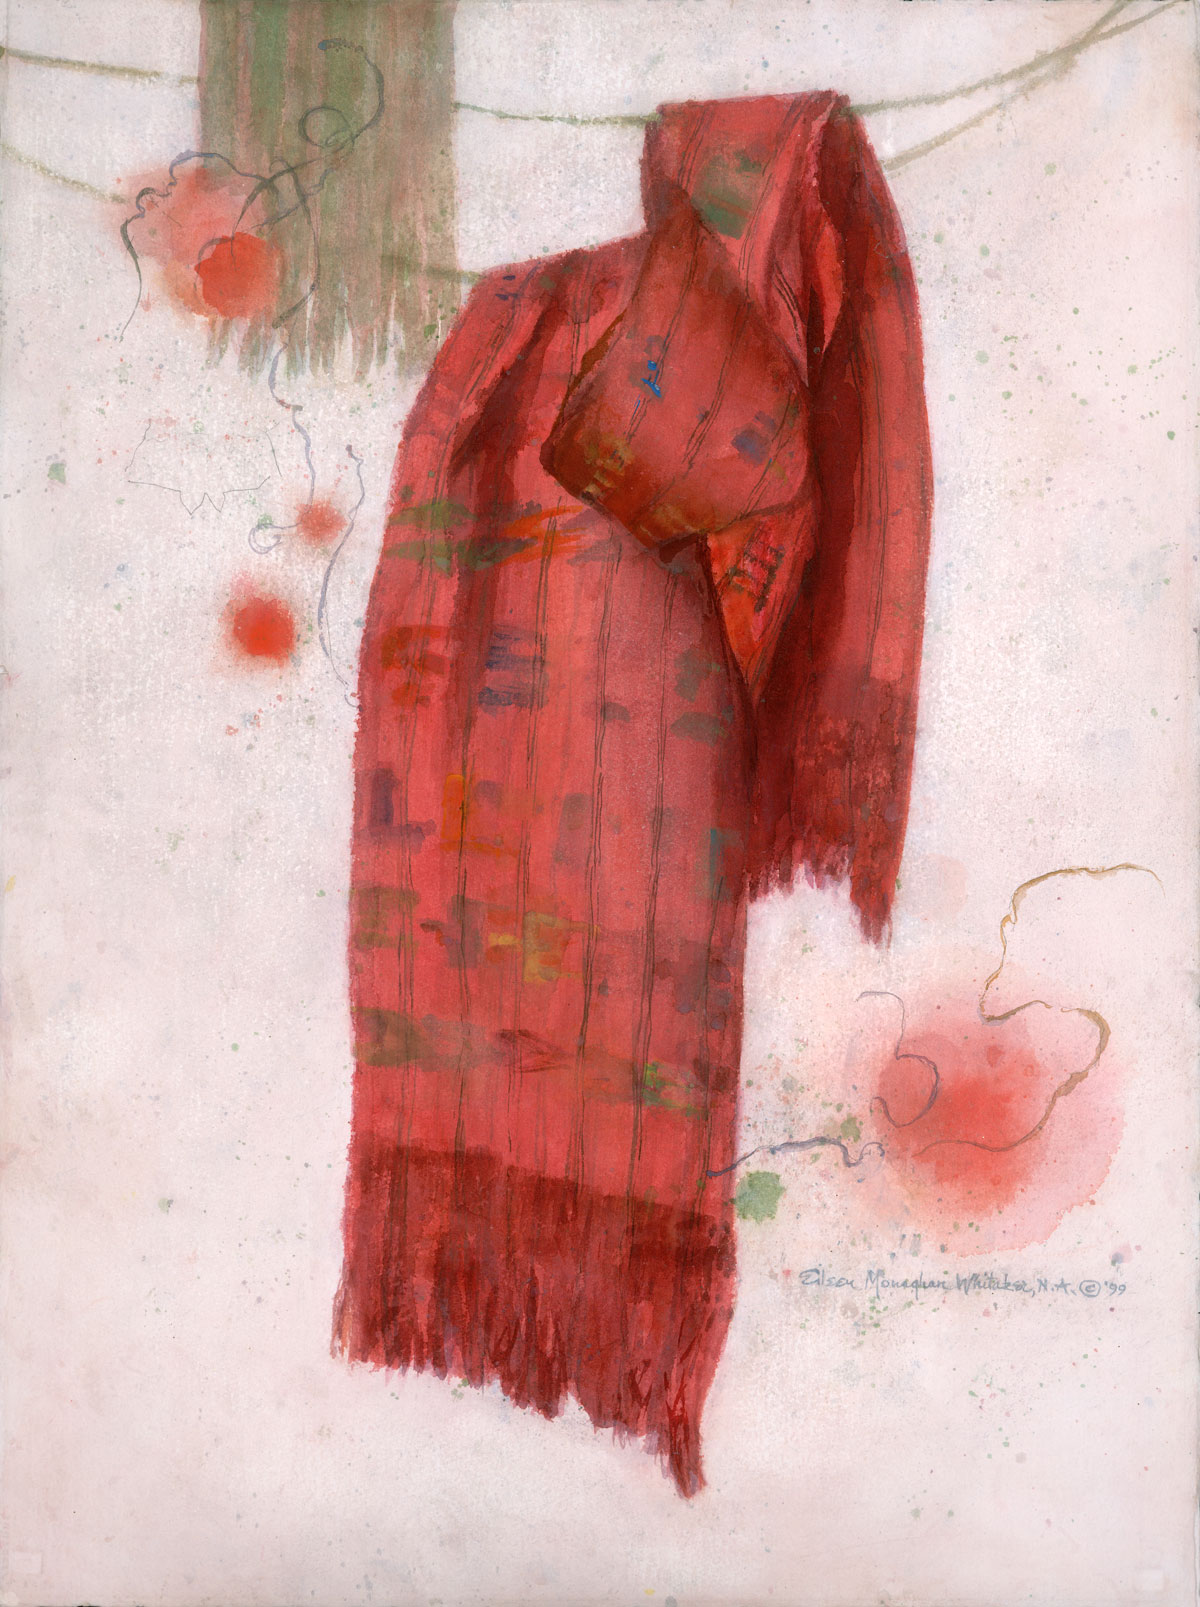 """The Red Shawl"" 1999 © Eileen Monaghan Whitaker 30x22.5 inches Watercolor"